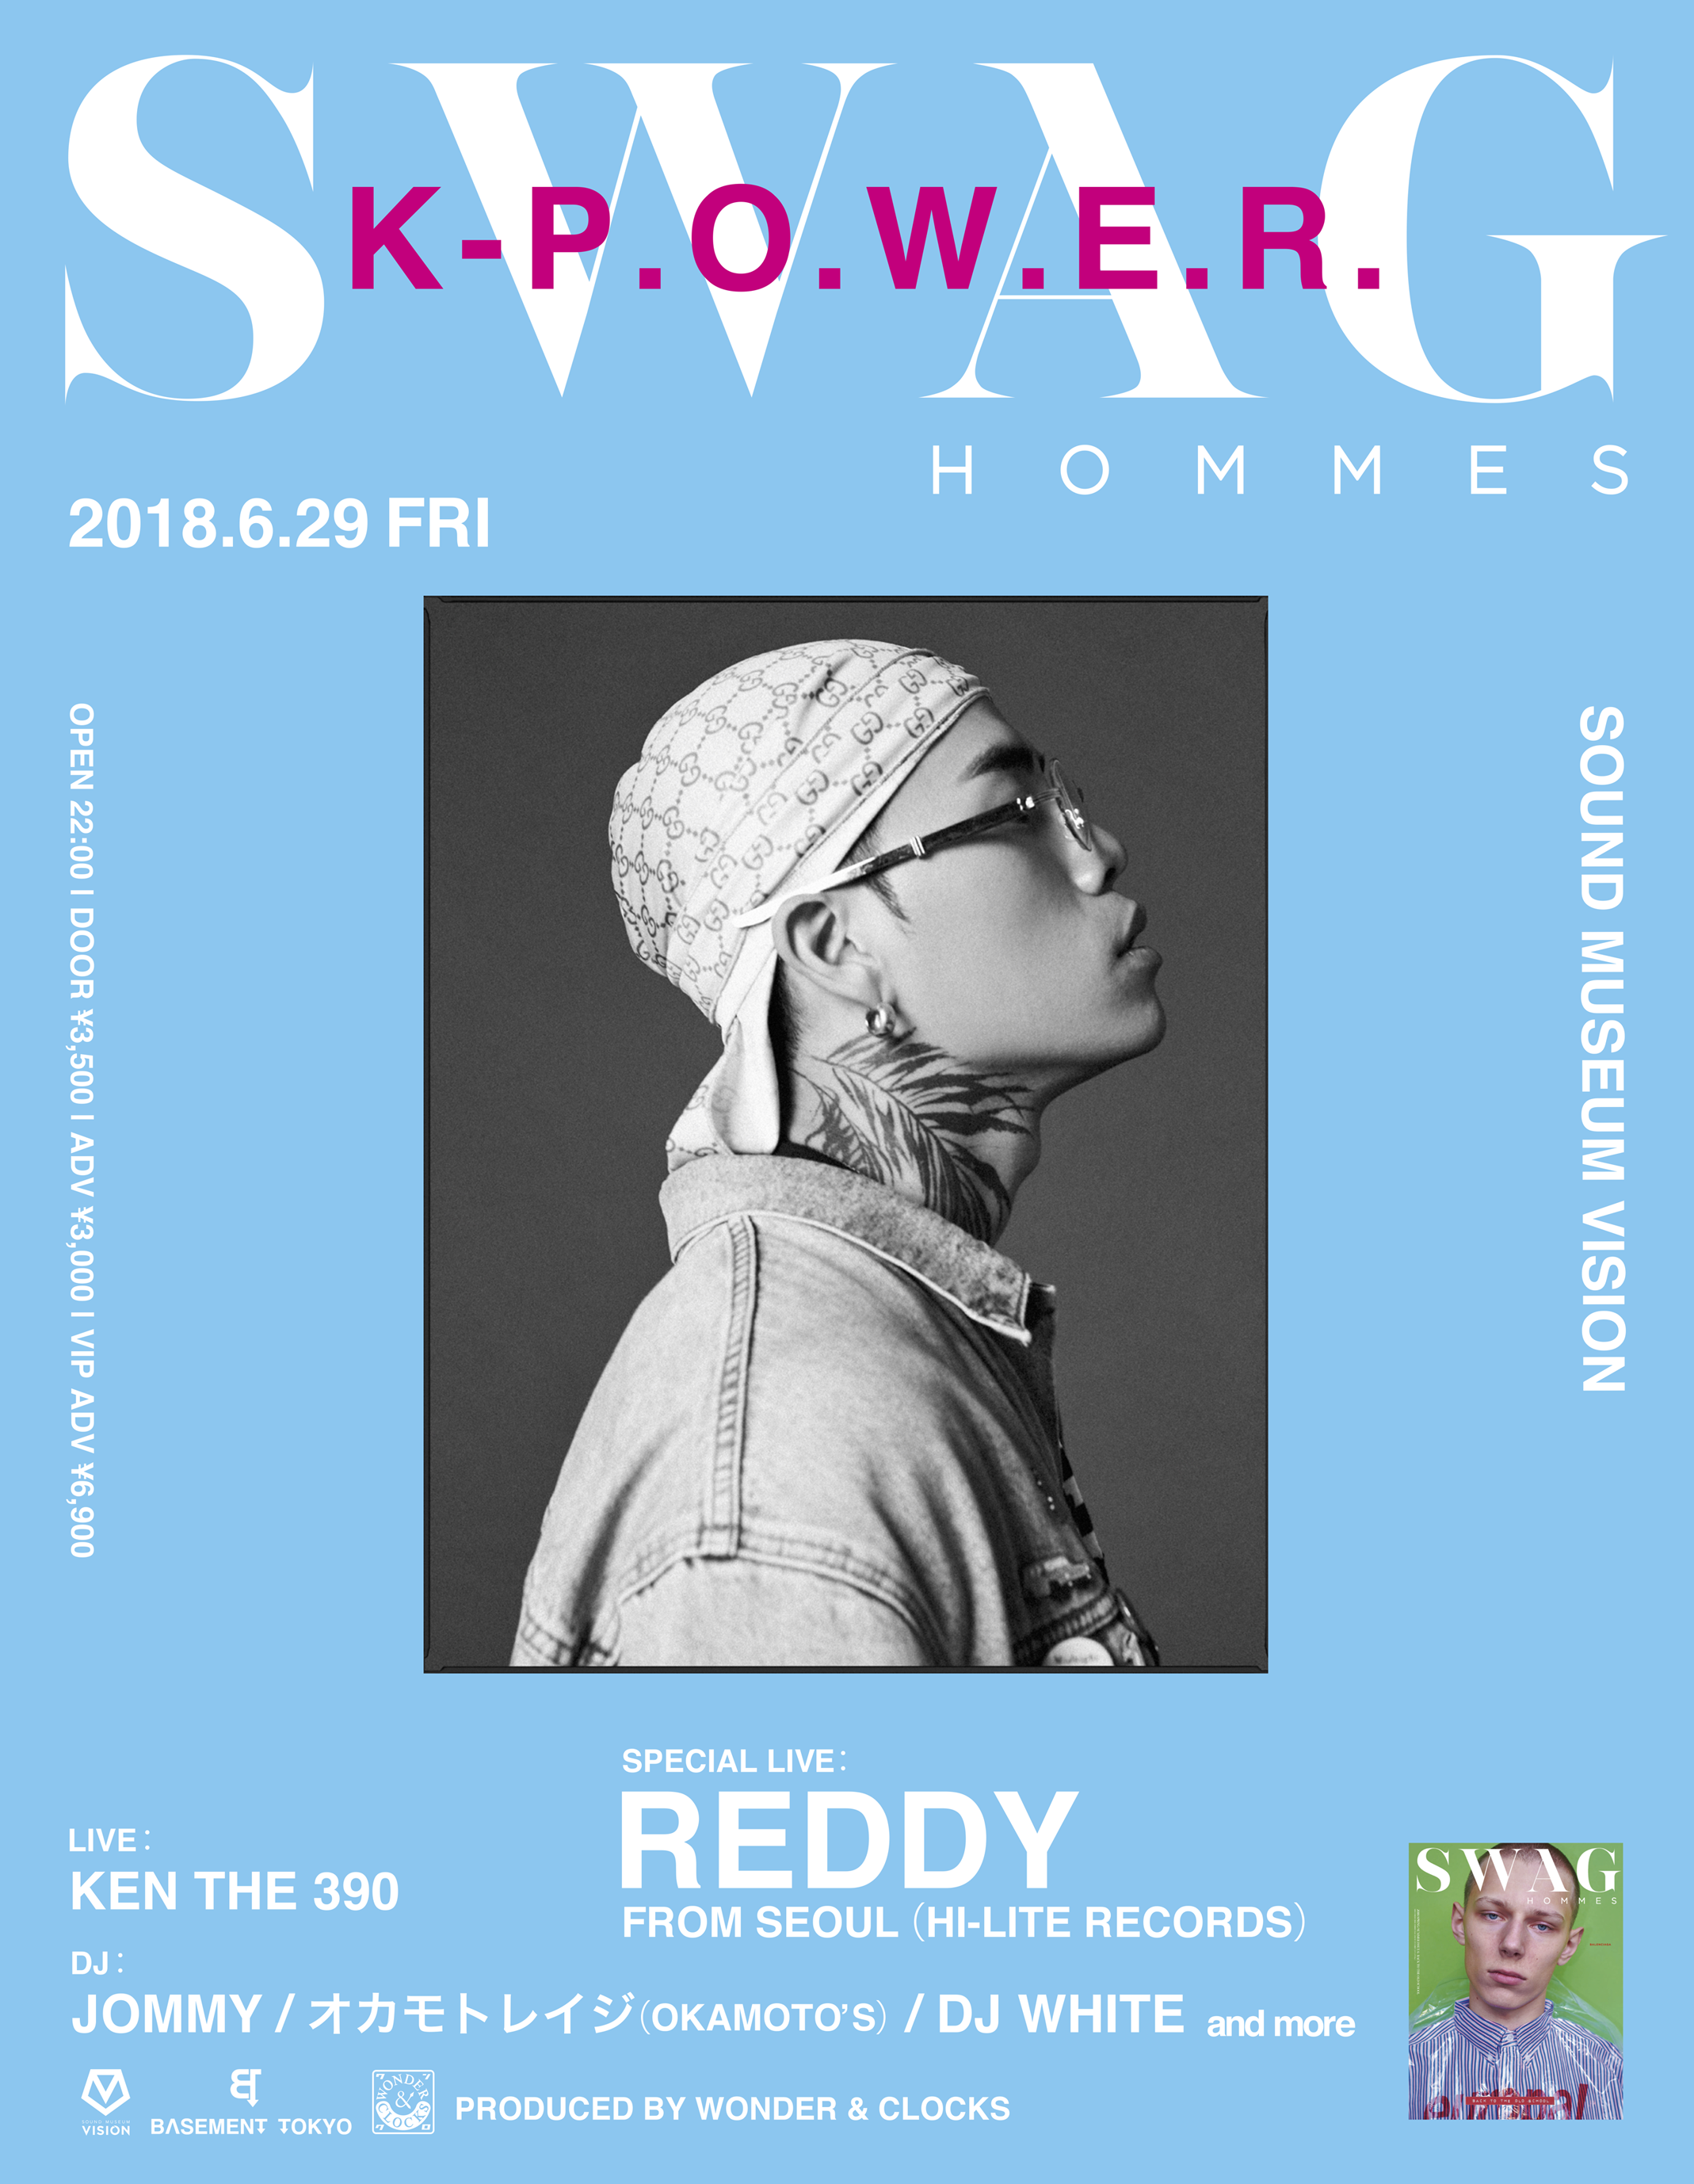 SWAG HOMMES × K-P.O.W.E.R. feat. Reddy from seoul(Hi-Lite Records) Produced by WONDER&CLOCKS//ワンクロ